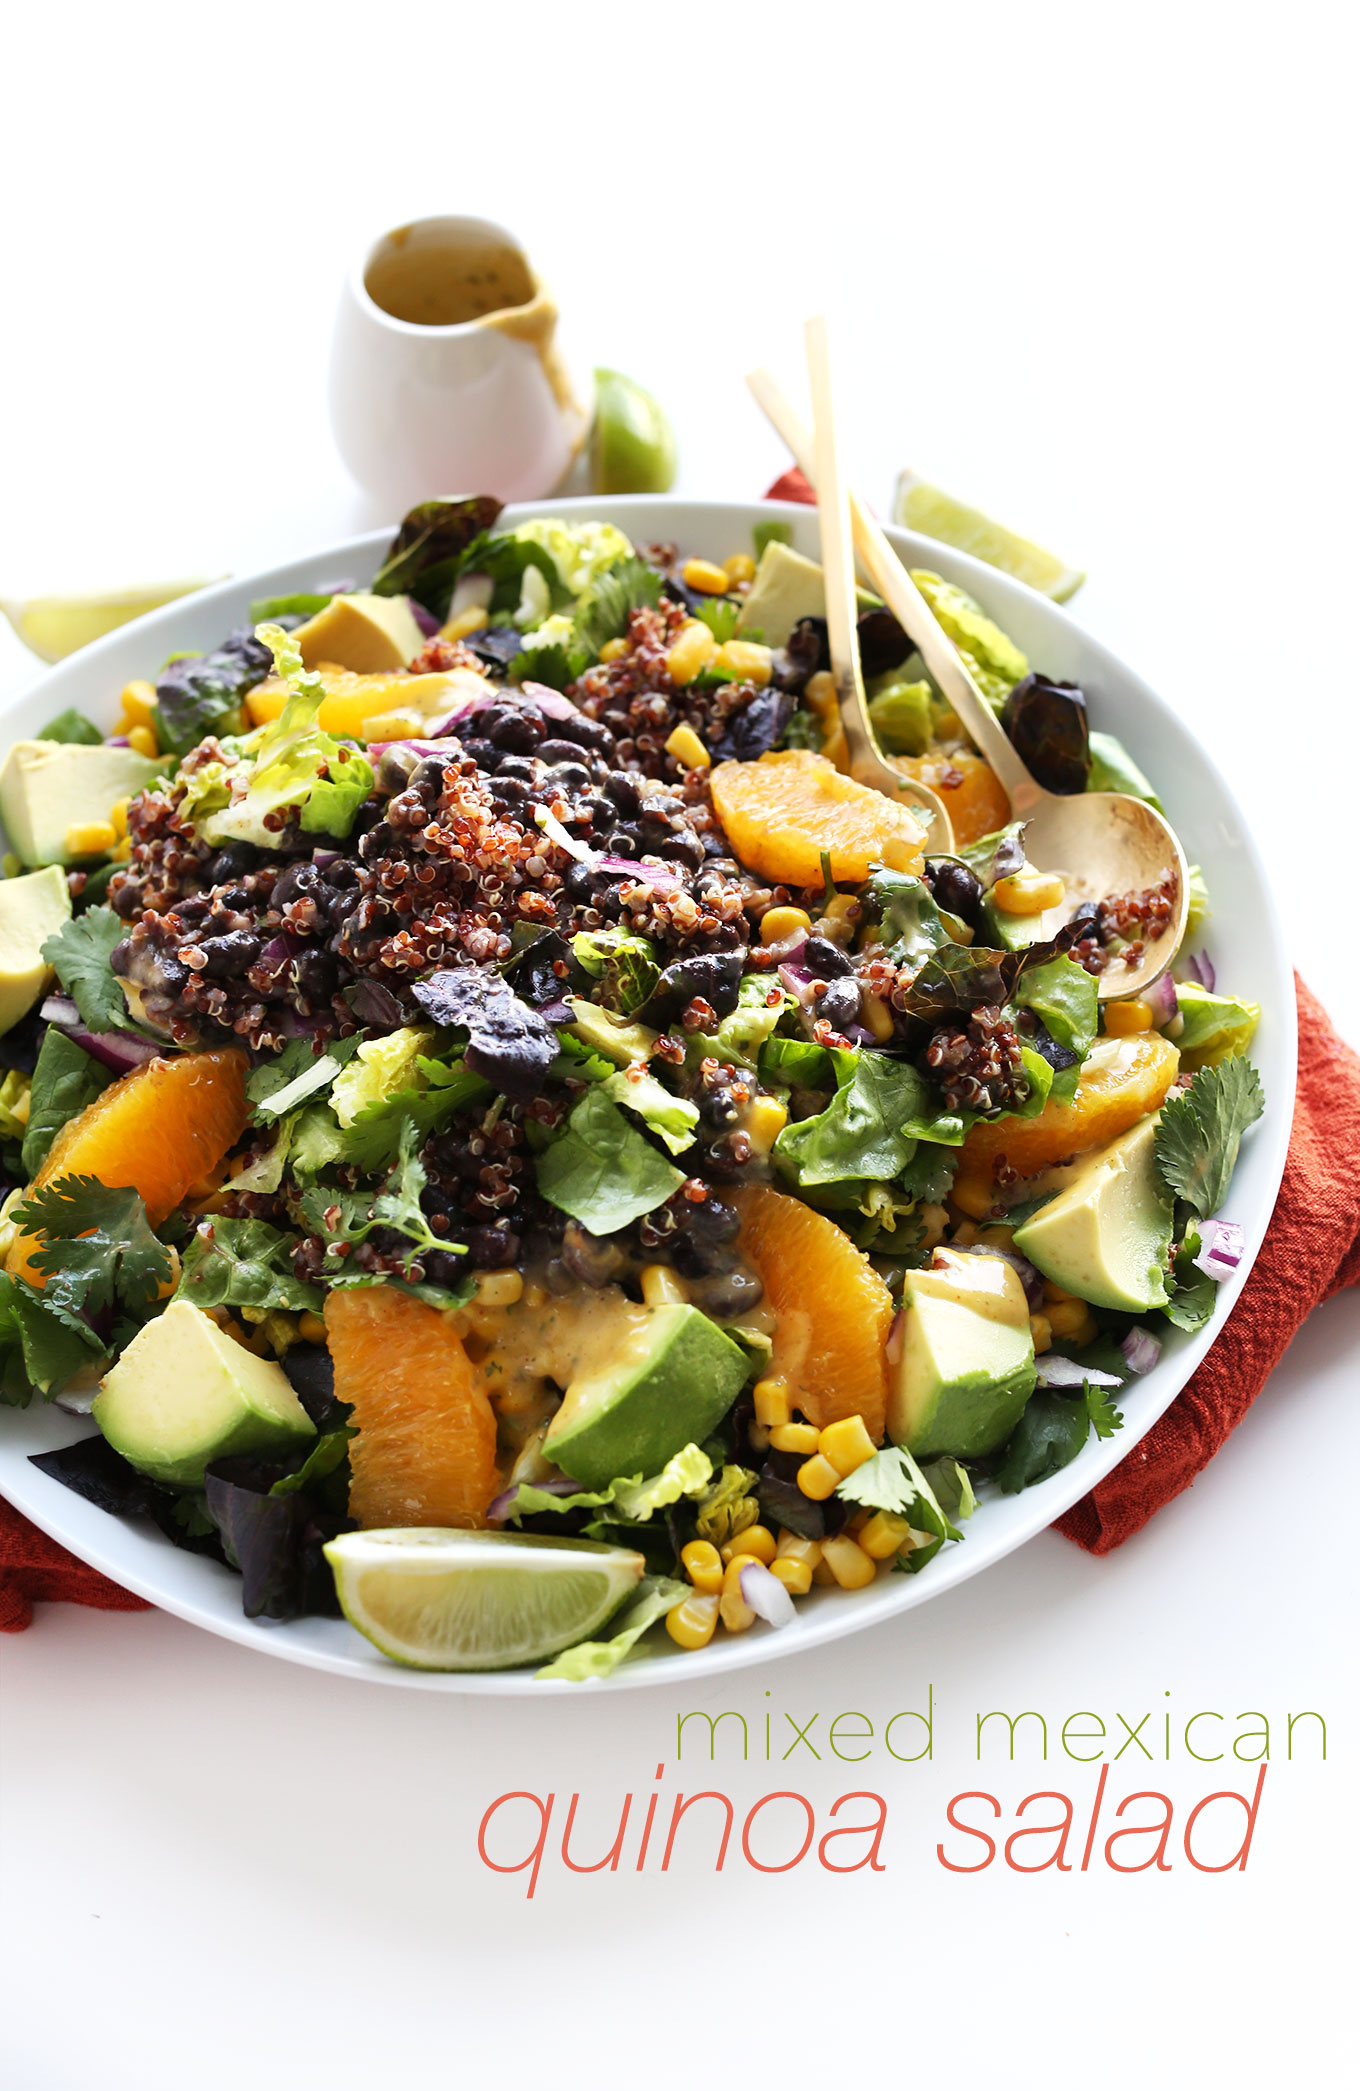 Gluten-free vegan whole meal Mexican Salad with Quinoa, Black Beans, and Corn